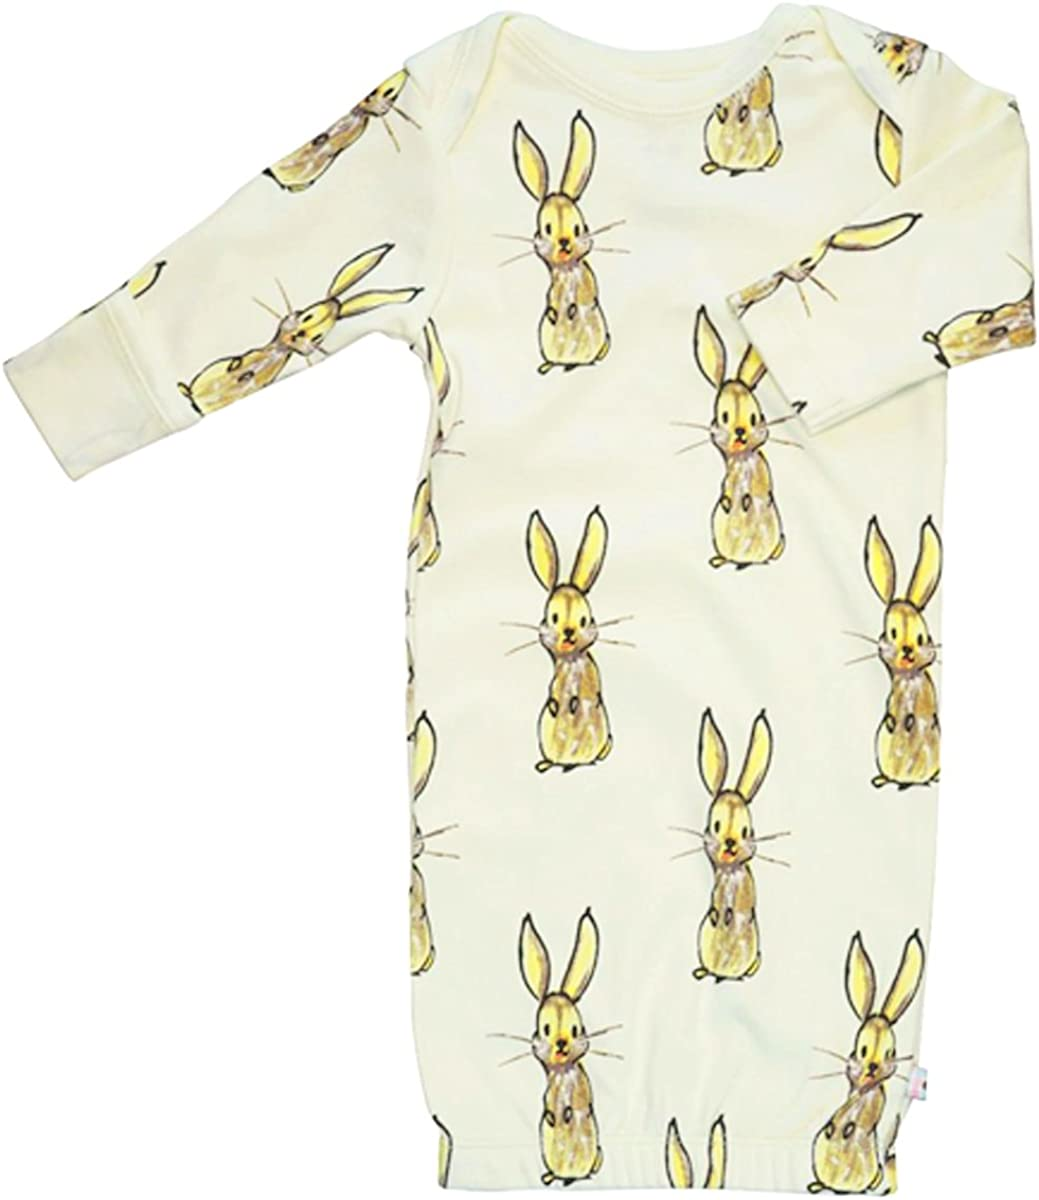 Babysoy Long Sleeve Baby Infant Animal Pattern Gown/Newborn Sleep sac with Mittens